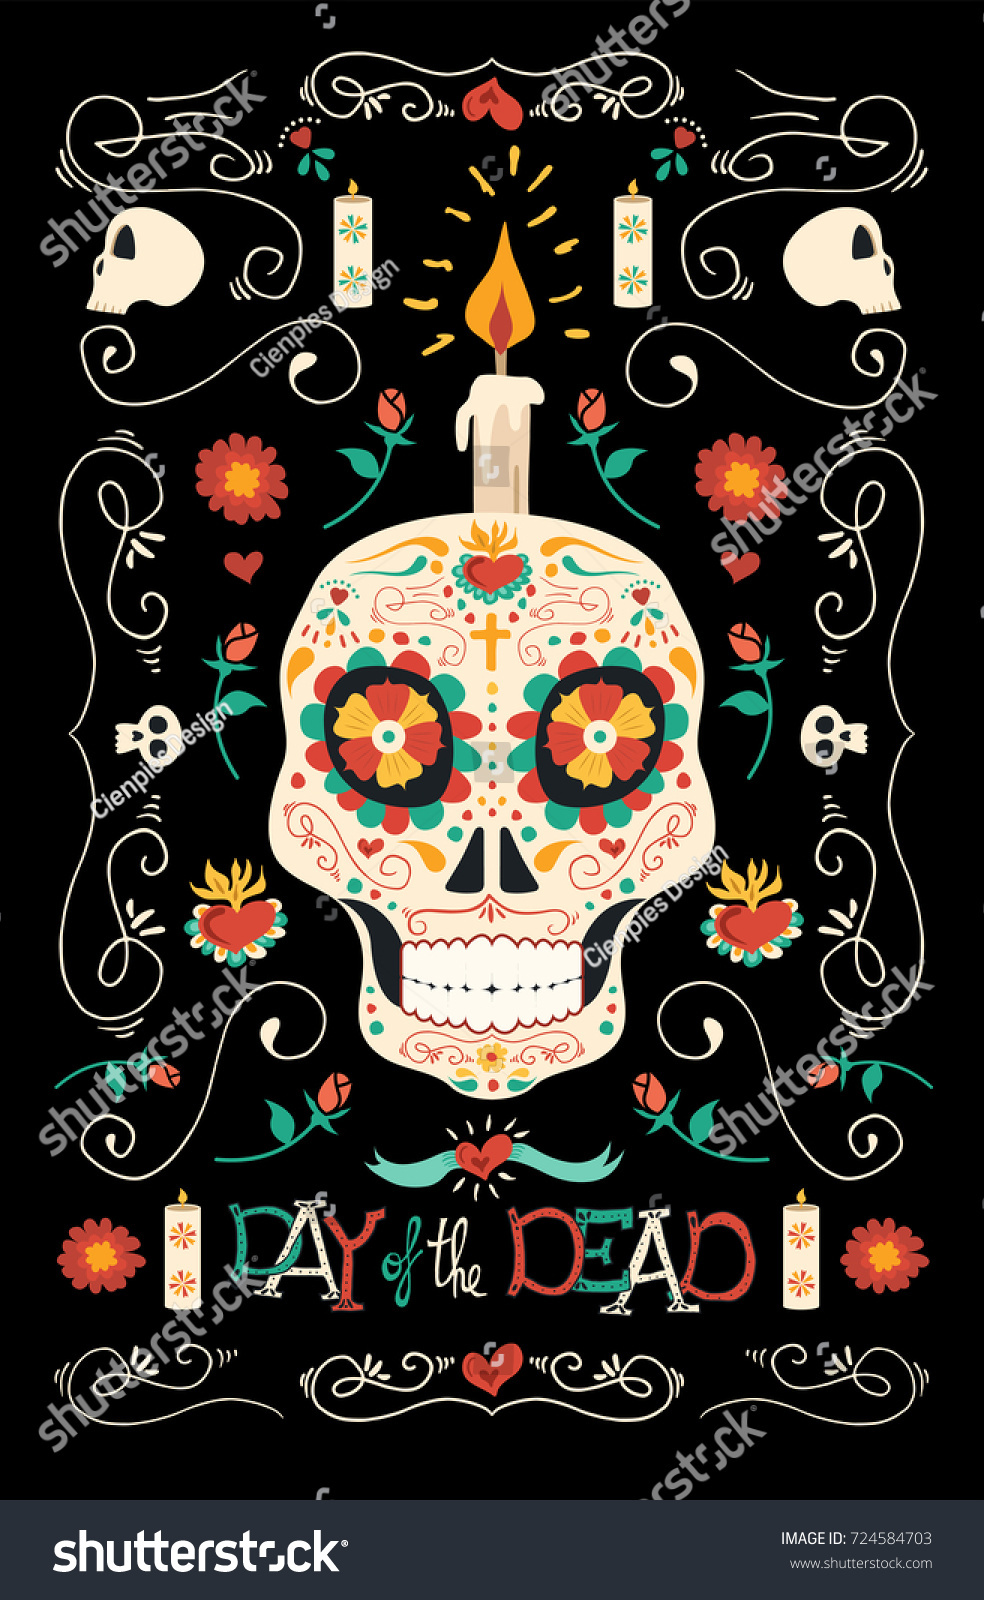 Day Of The Dead Hand Tattoo: Mexican Day Dead Poster Illustration Hand Stock Vector